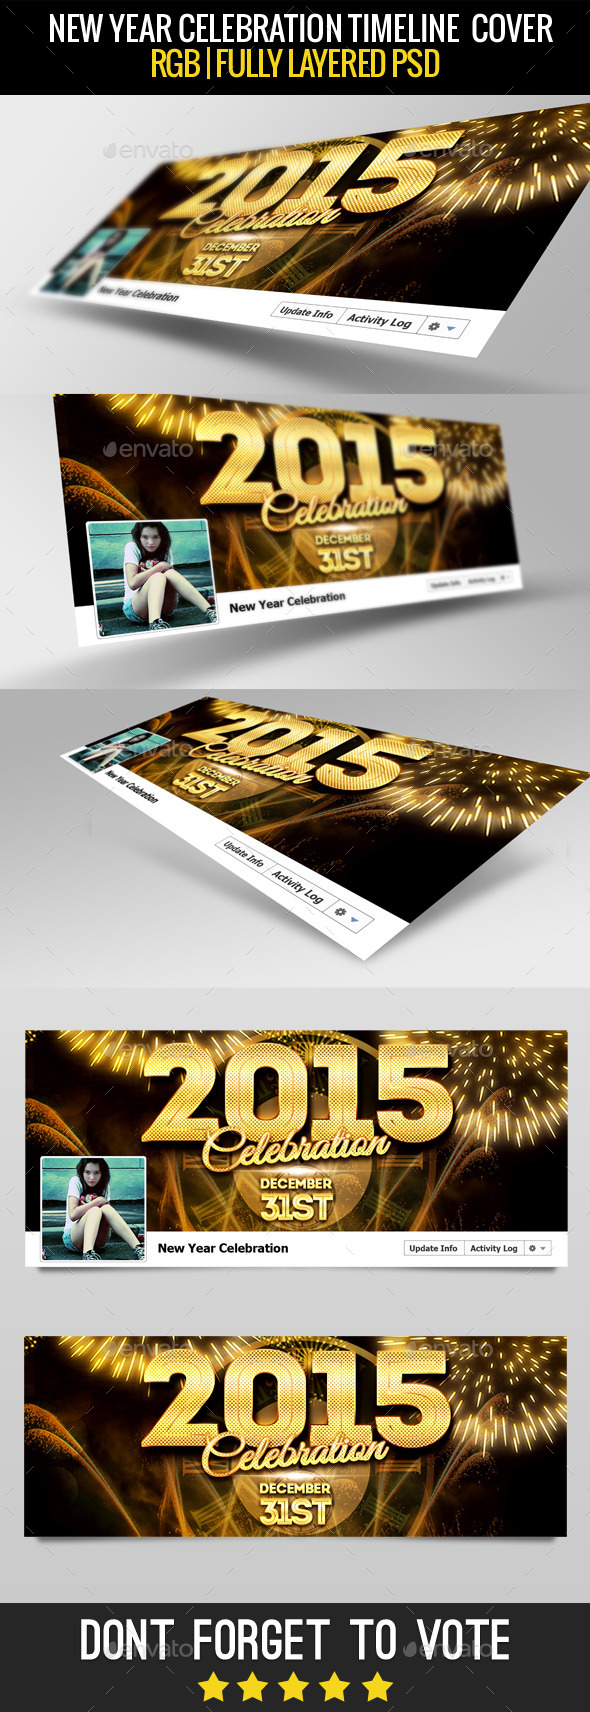 New Year Facebook Cover 2015 - Facebook Timeline Covers Social Media